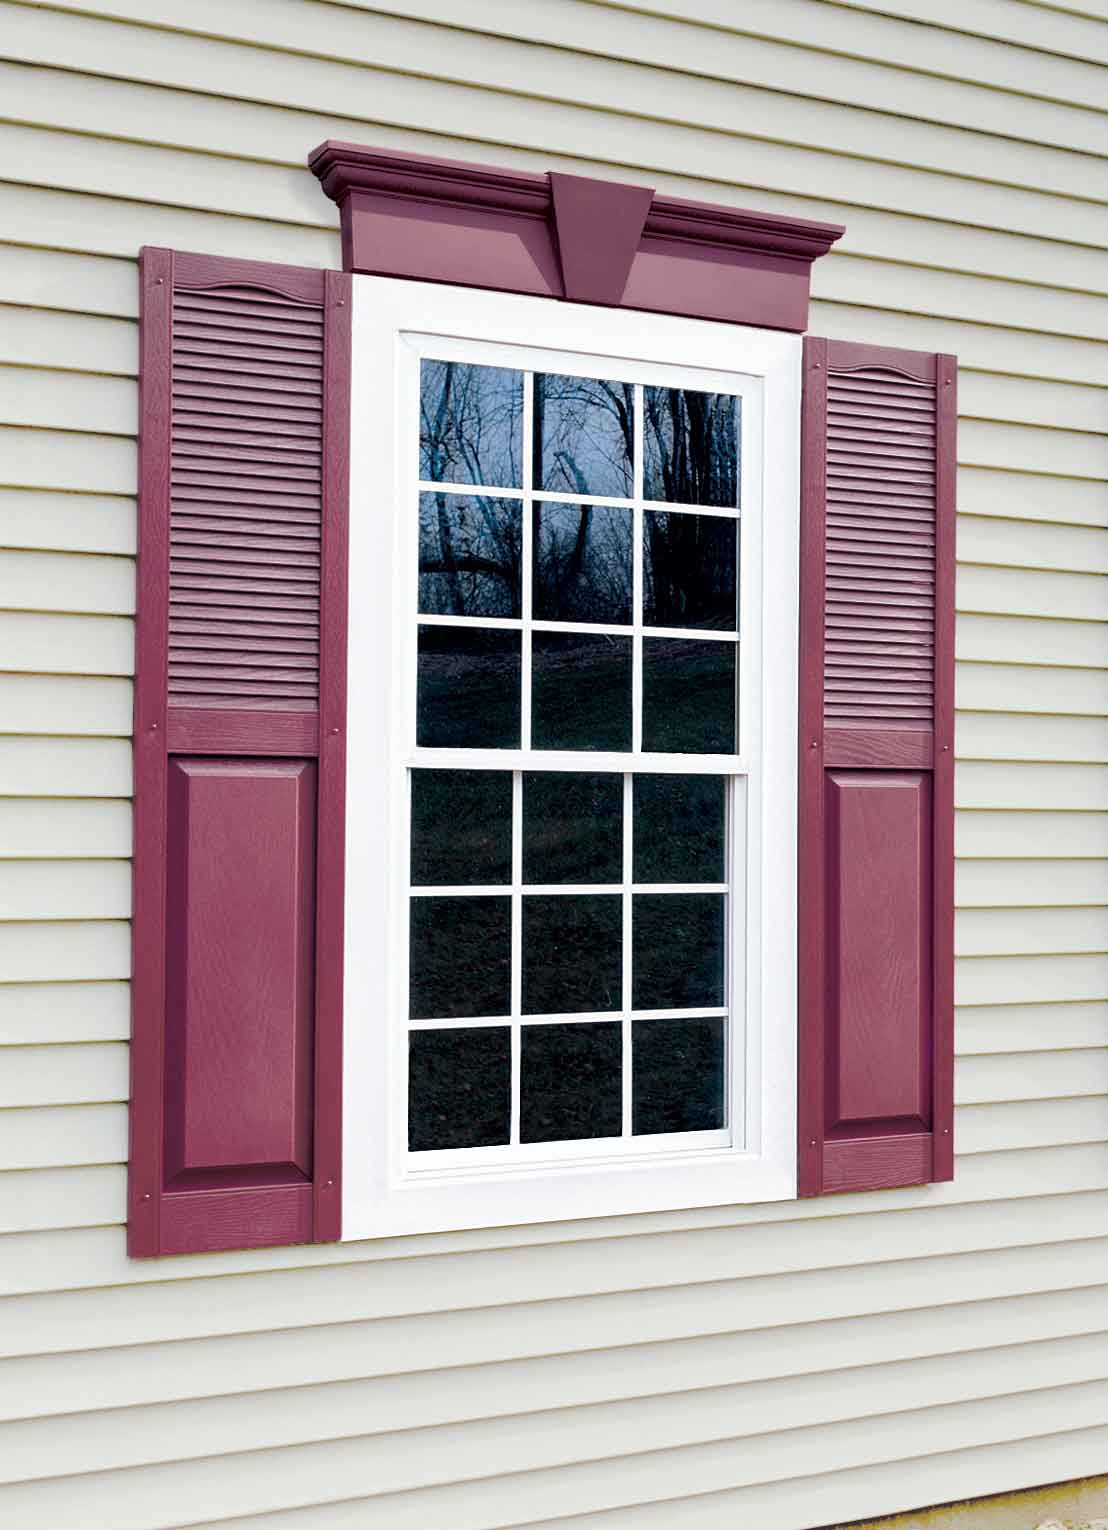 External shutters trade window shutters for Window shutters